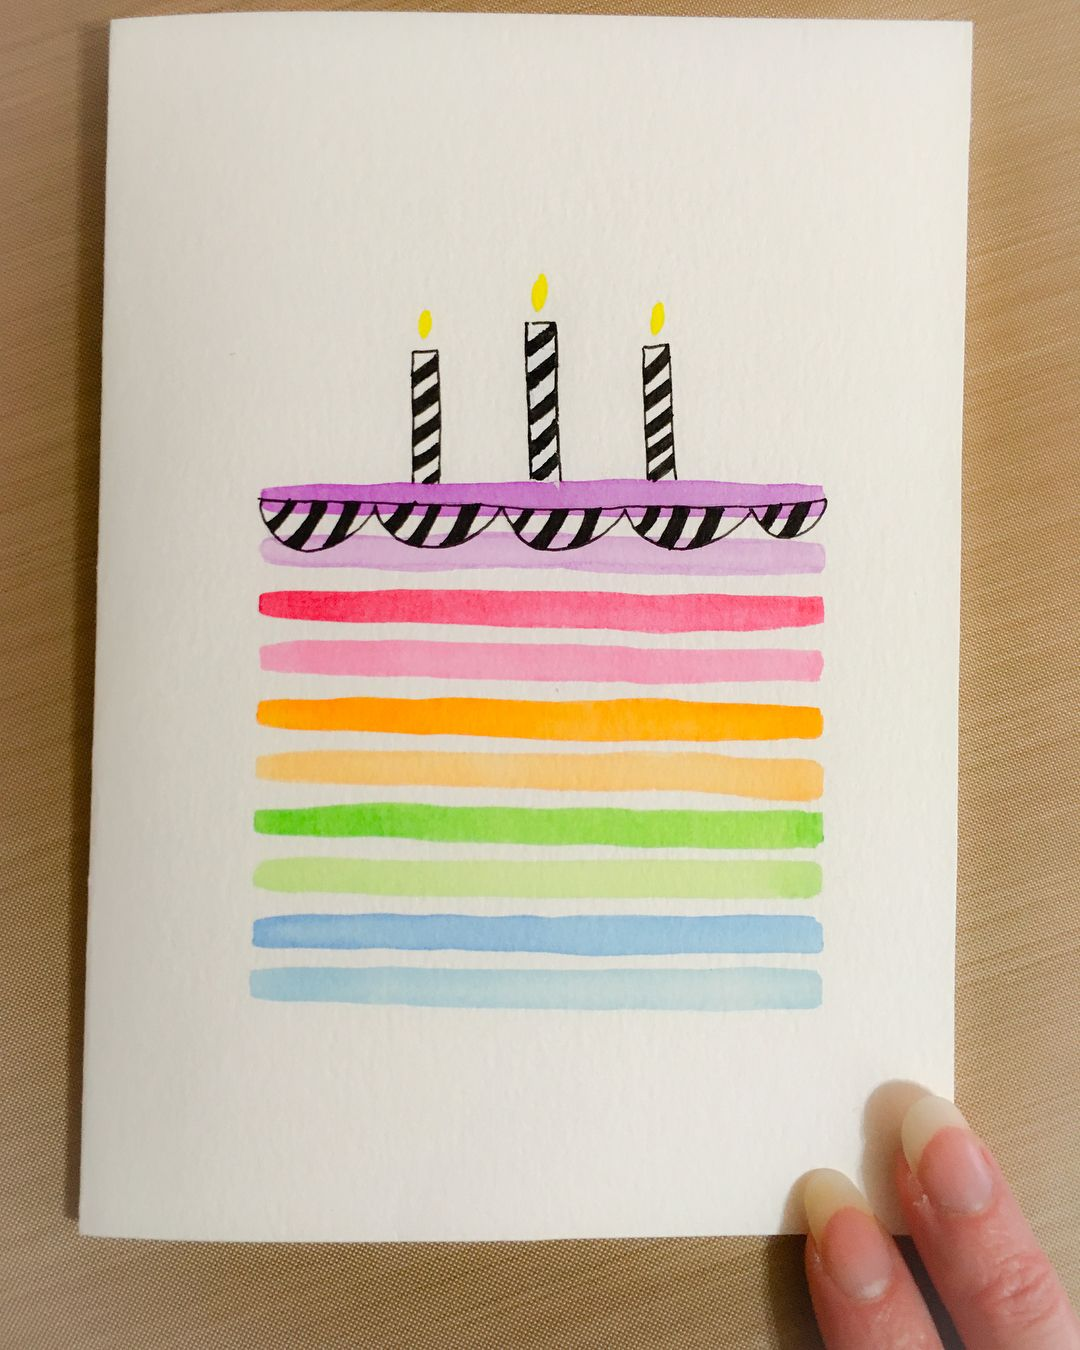 I Made This Birthday Card For My Sweet Aunt Who Just Had A Birthday The Design Is By Kristina Wern Birthday Card For Aunt Birthday Card Drawing Birthday Cards